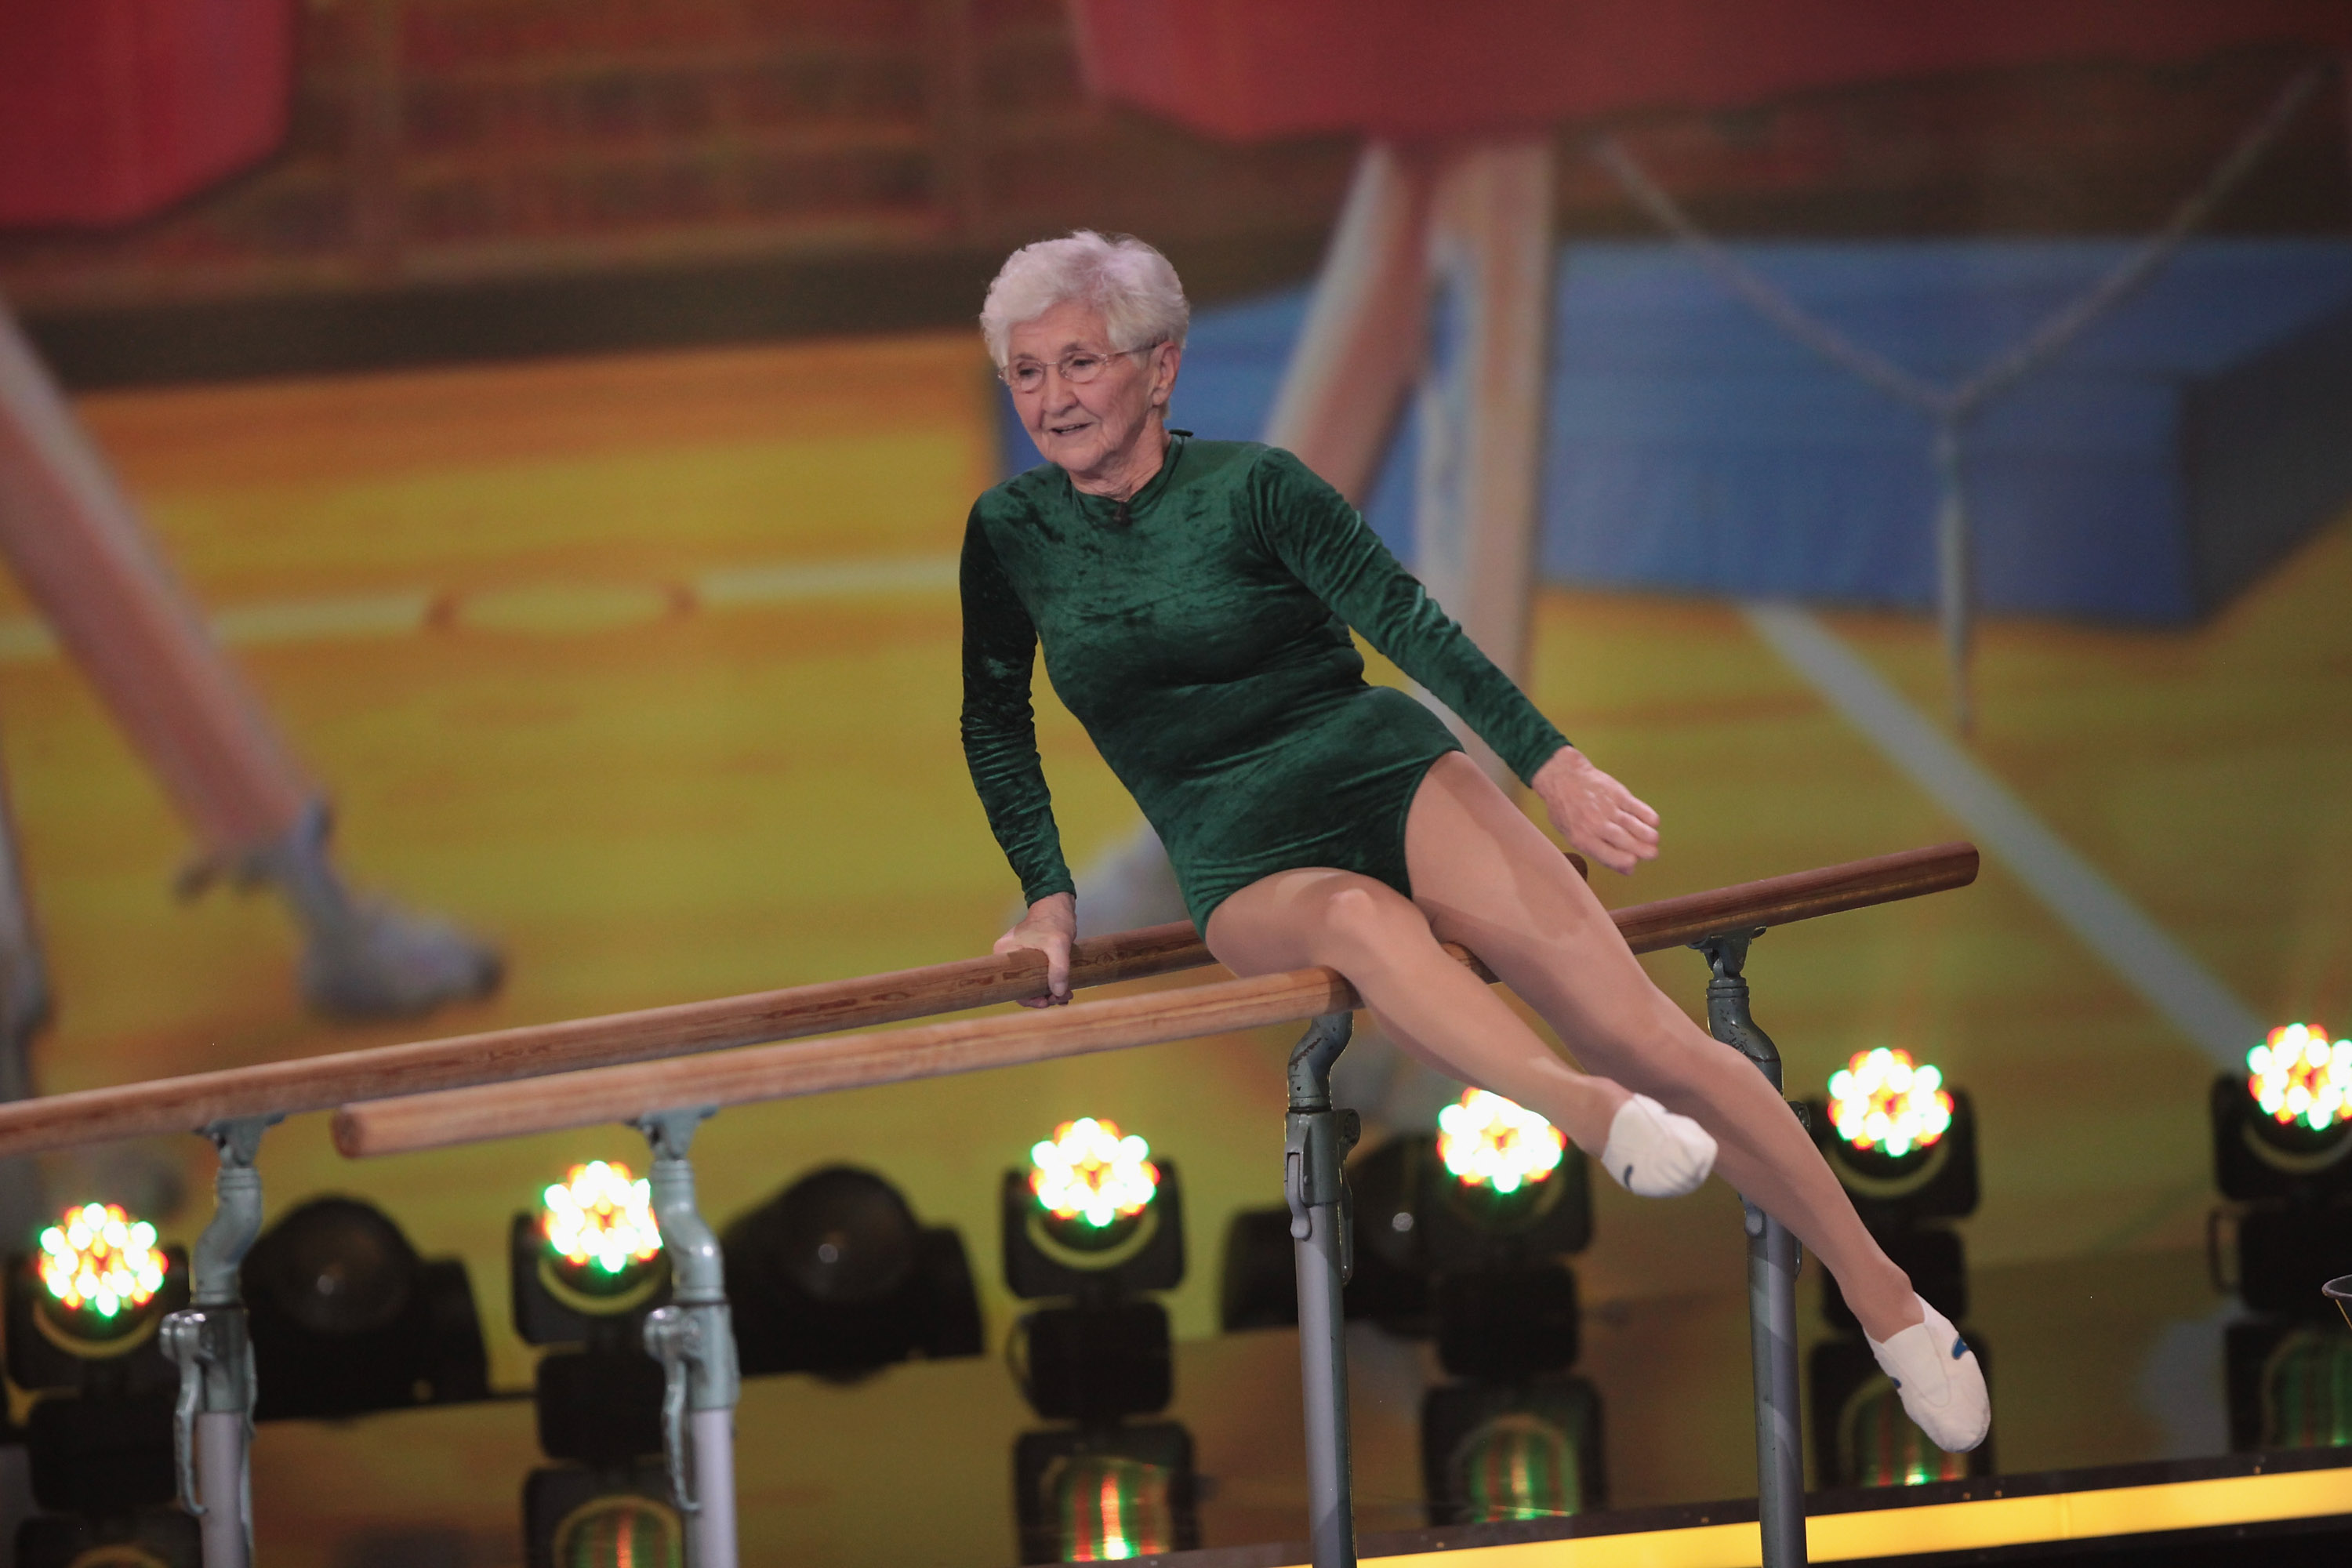 91 Year Old Gymnast Johanna Quaas